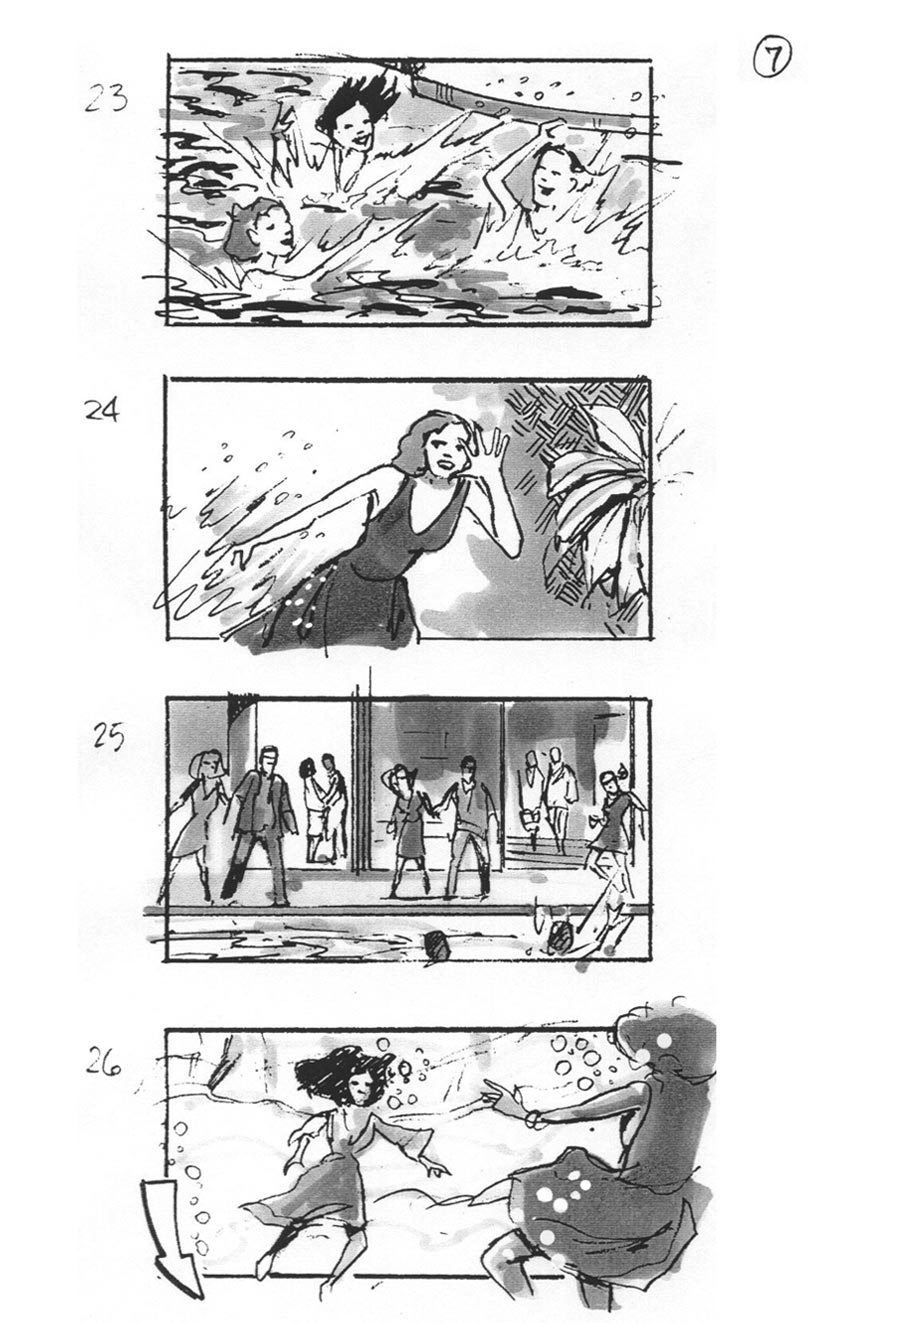 douglas ingram, storyboard art, lincoln car commercial